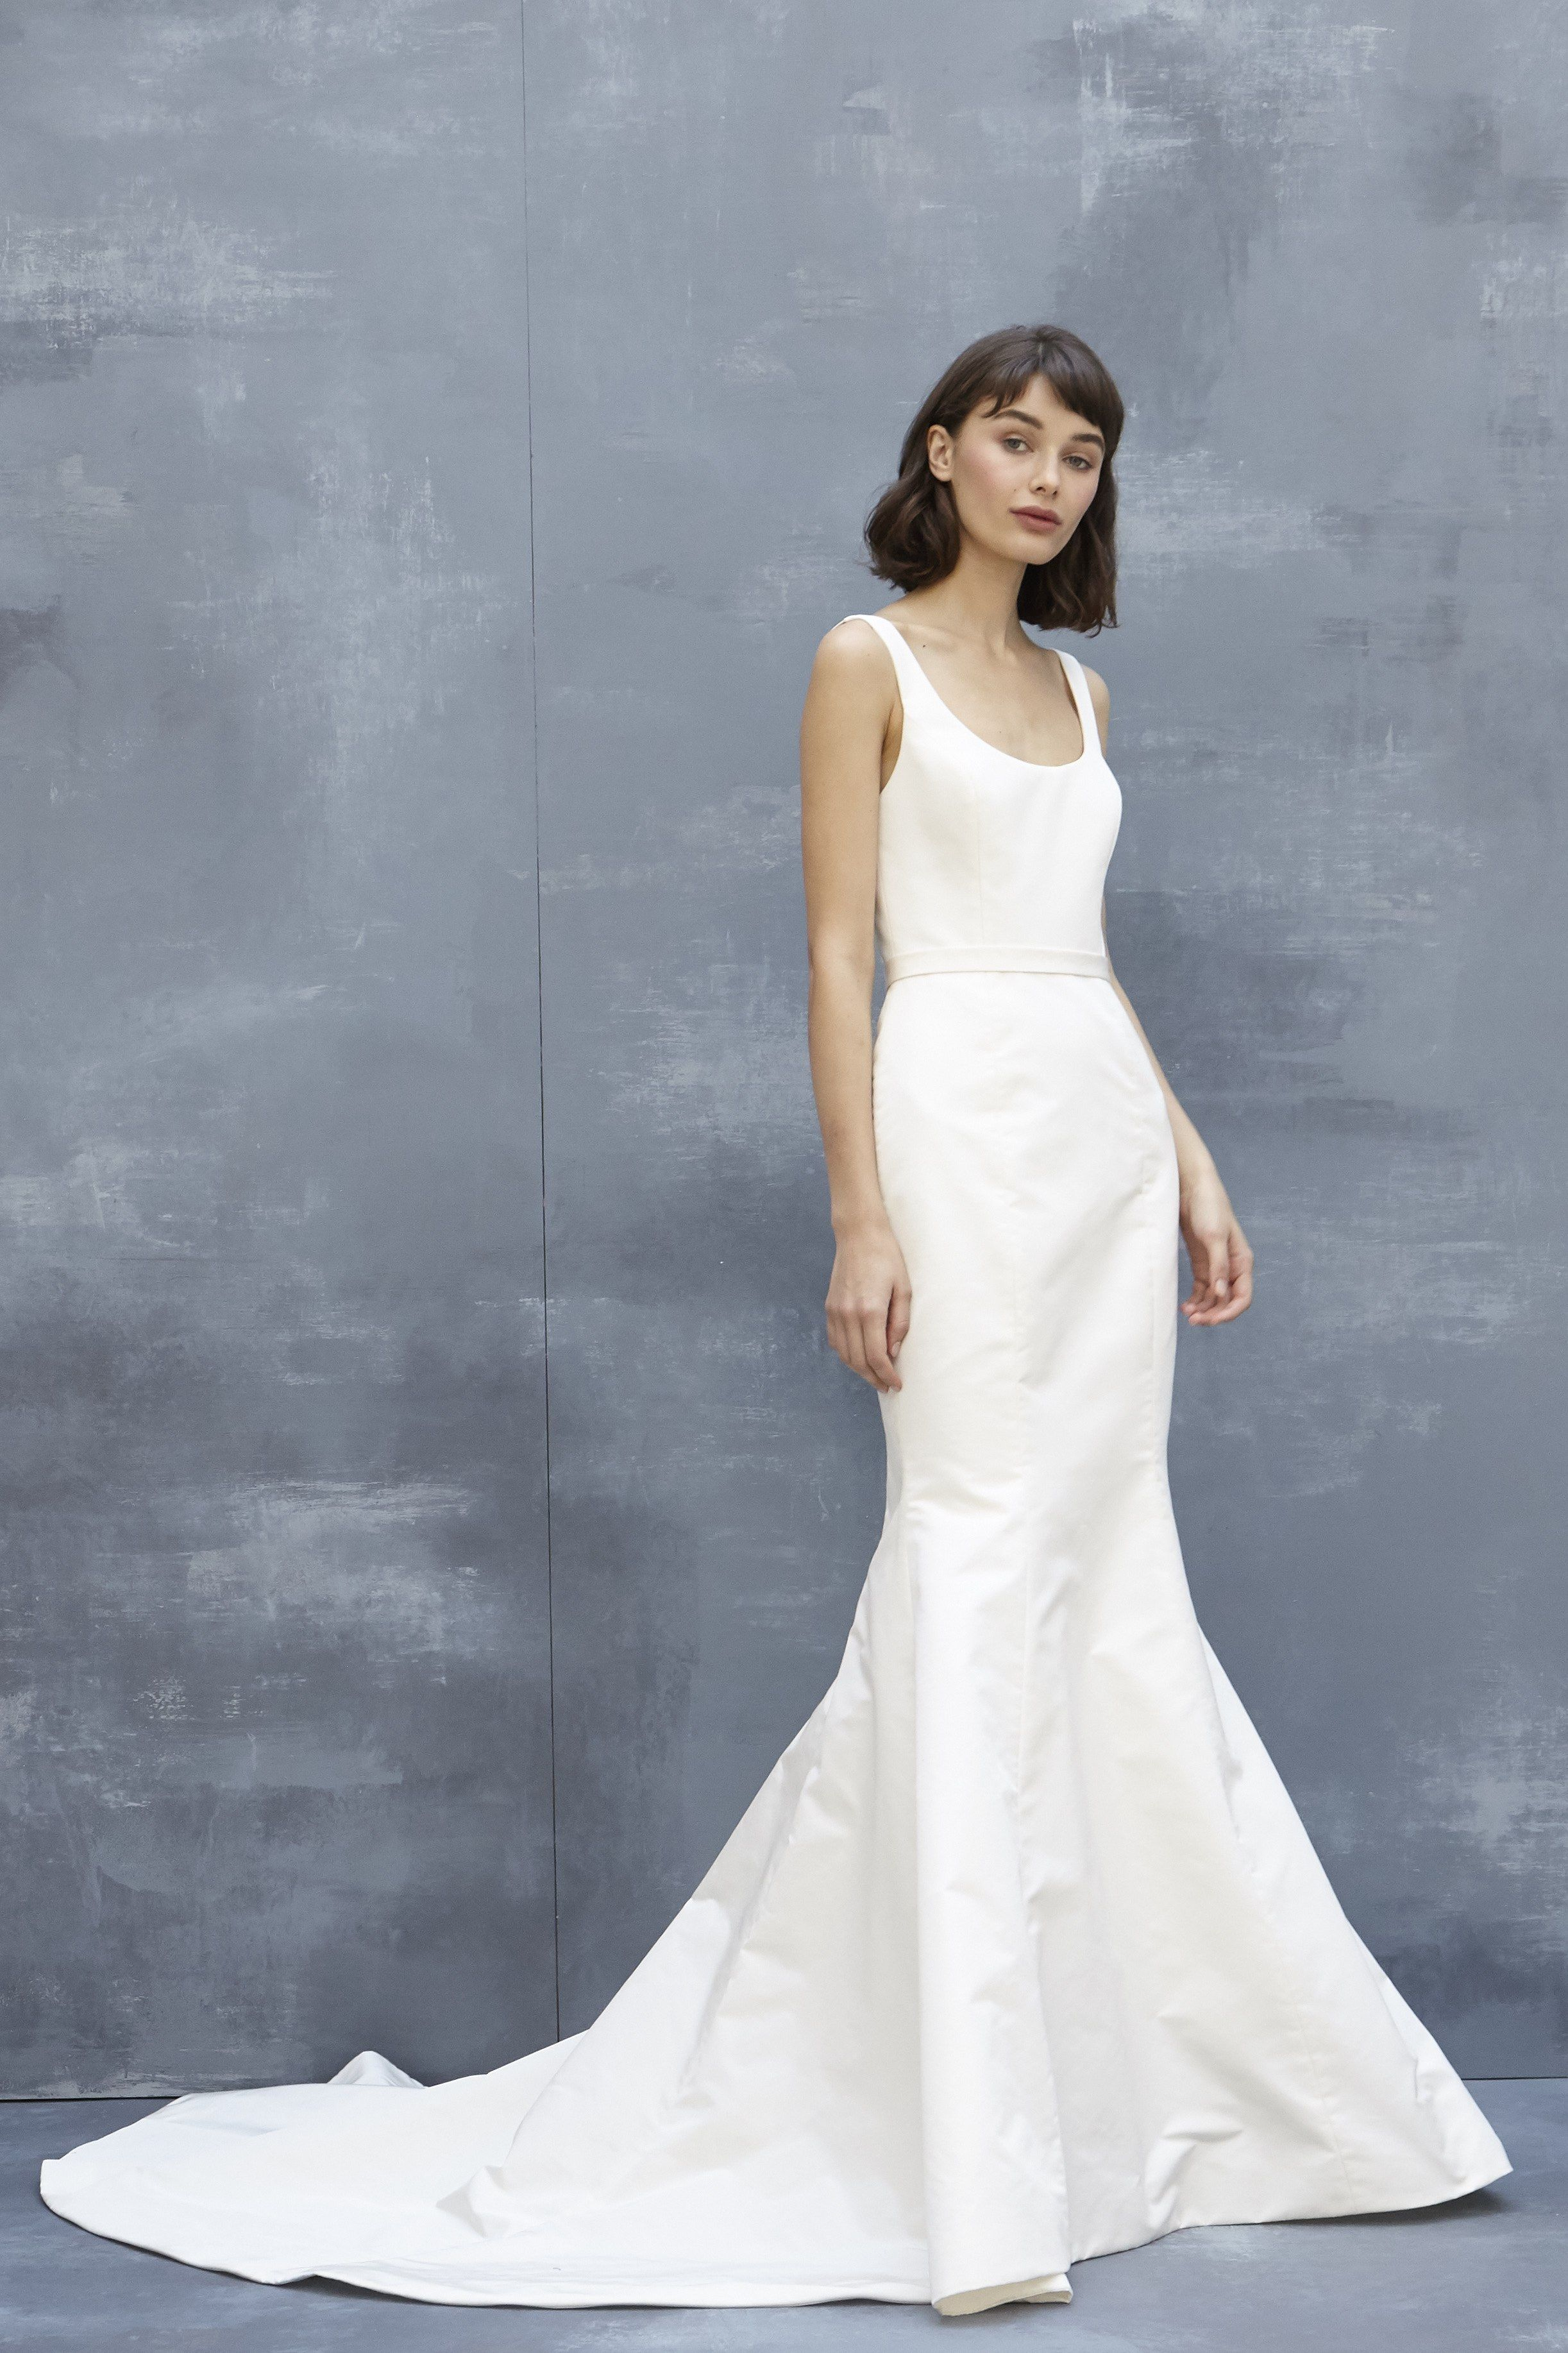 The 9 Fall 2018 Wedding Dress Trends Brides Need to Know | Brides ...